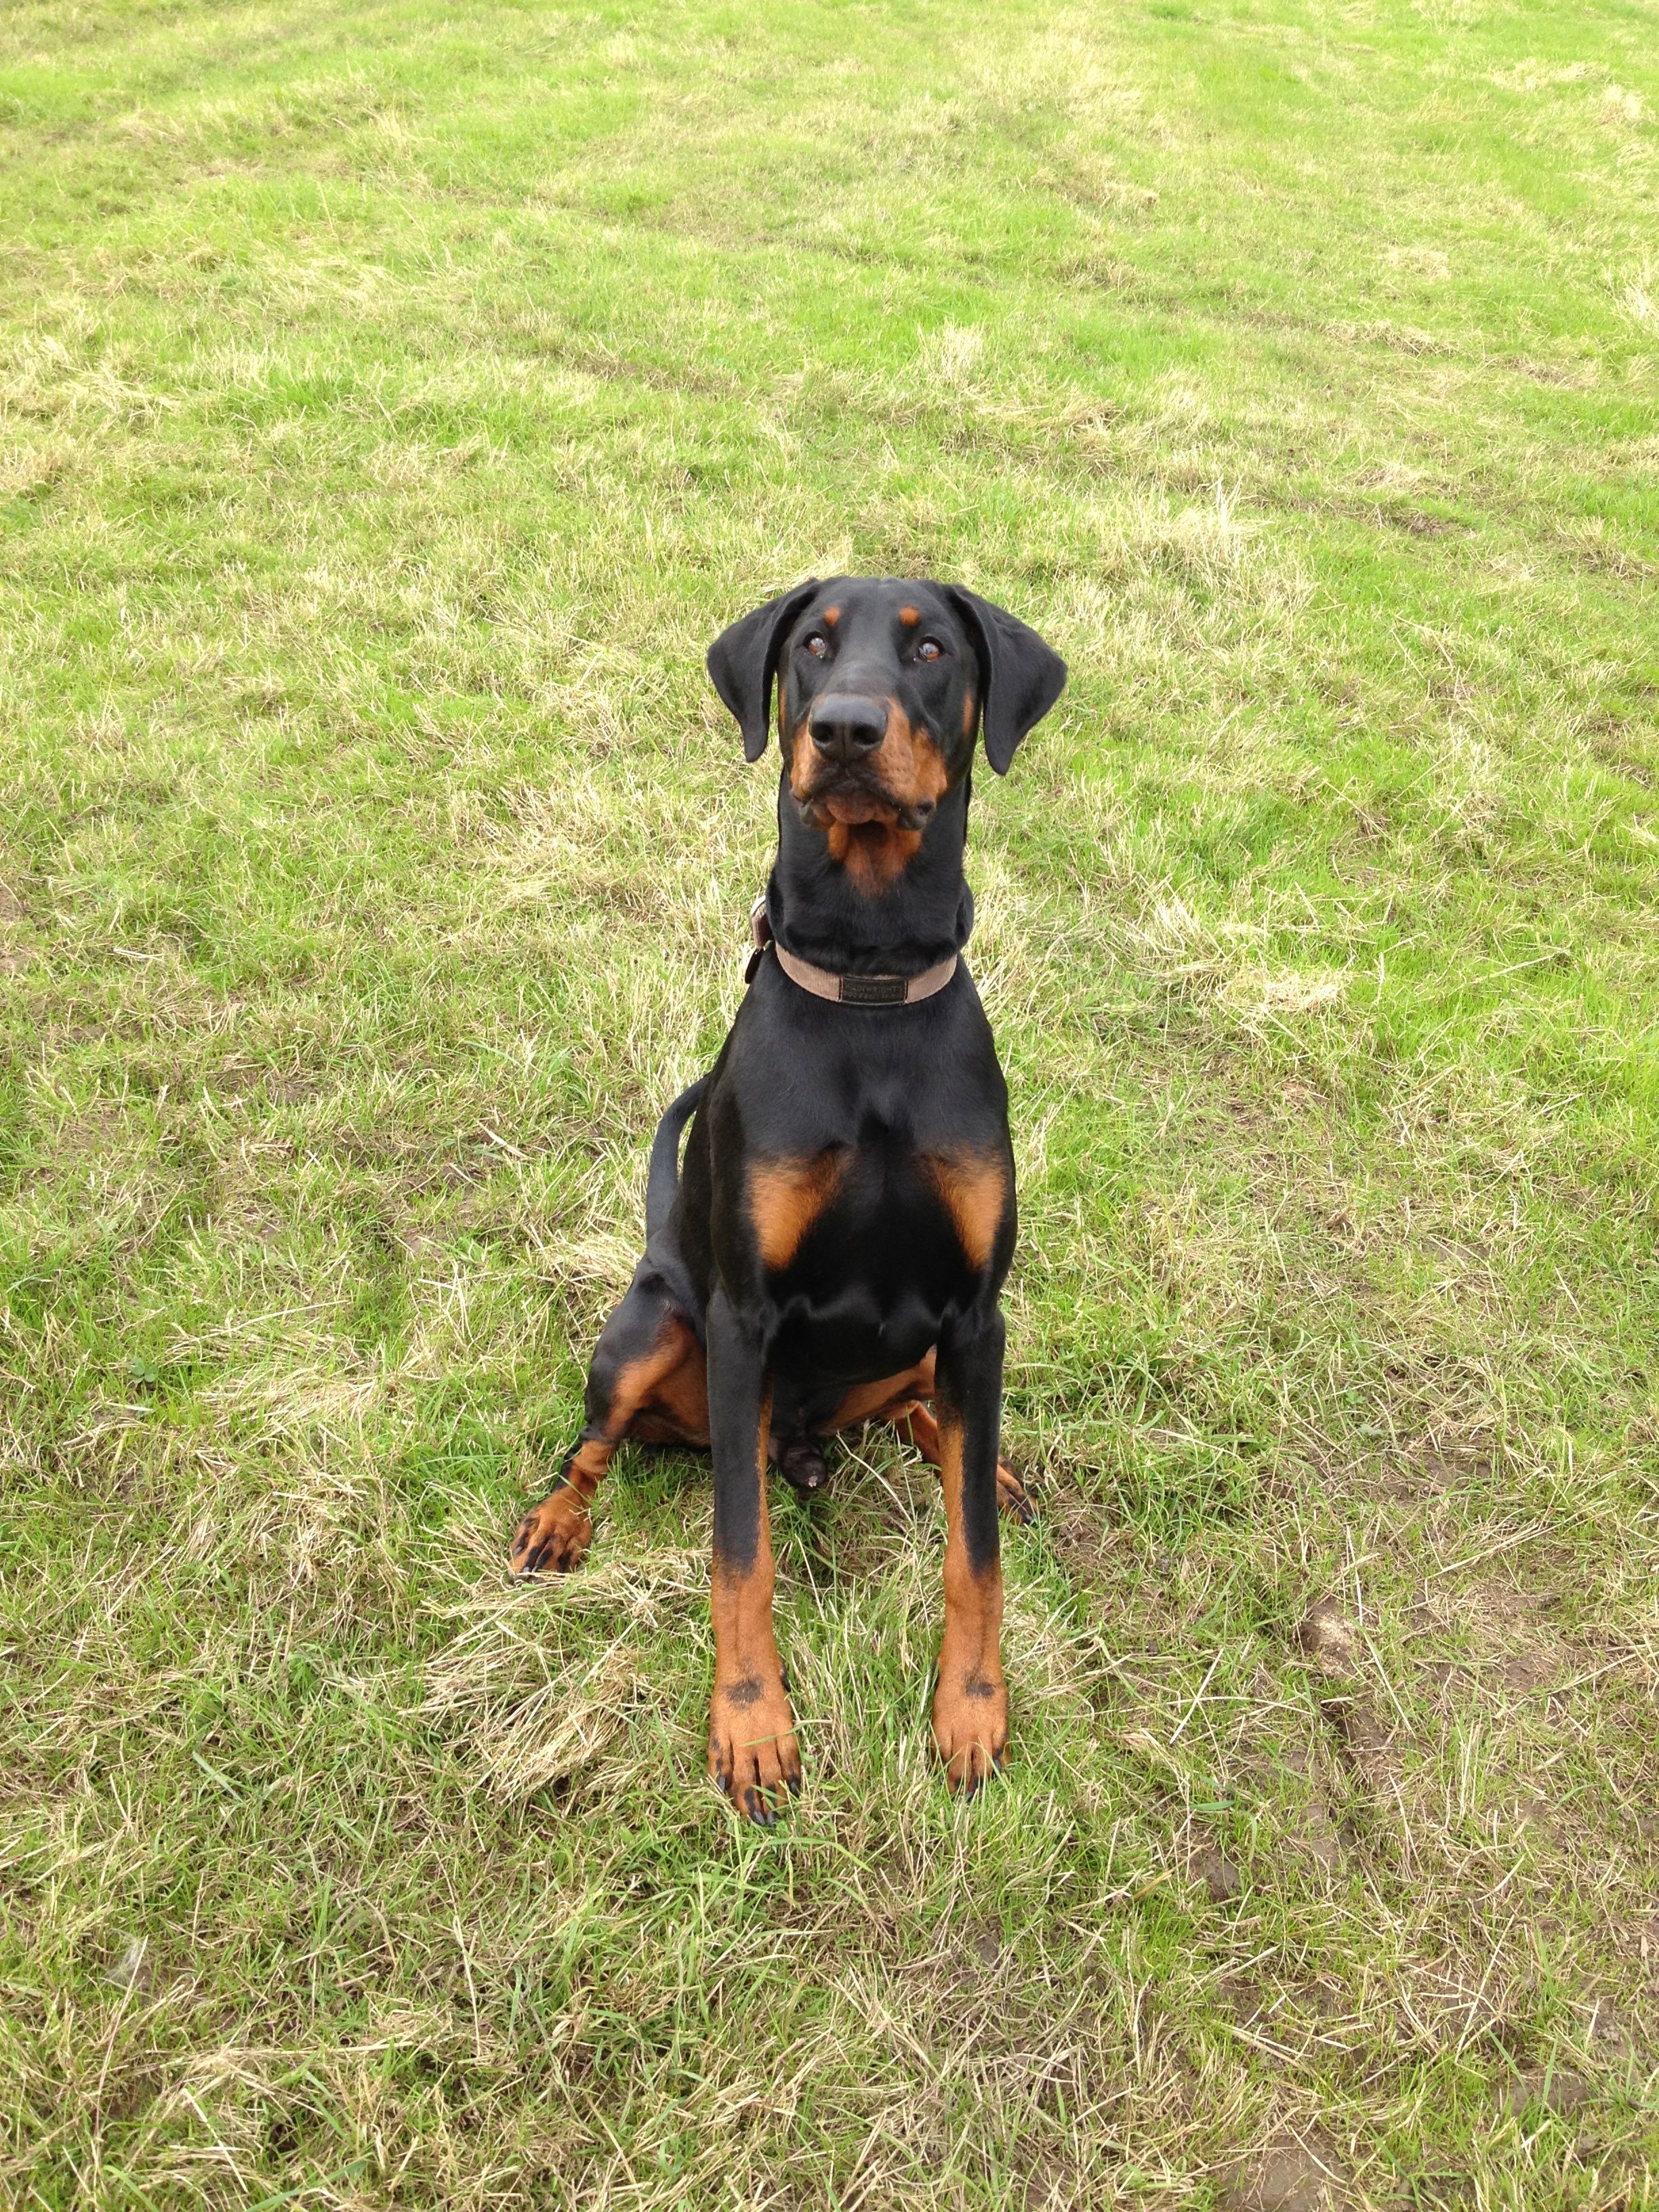 Doberman Pinscher Training You Can Get More Details Of Pet